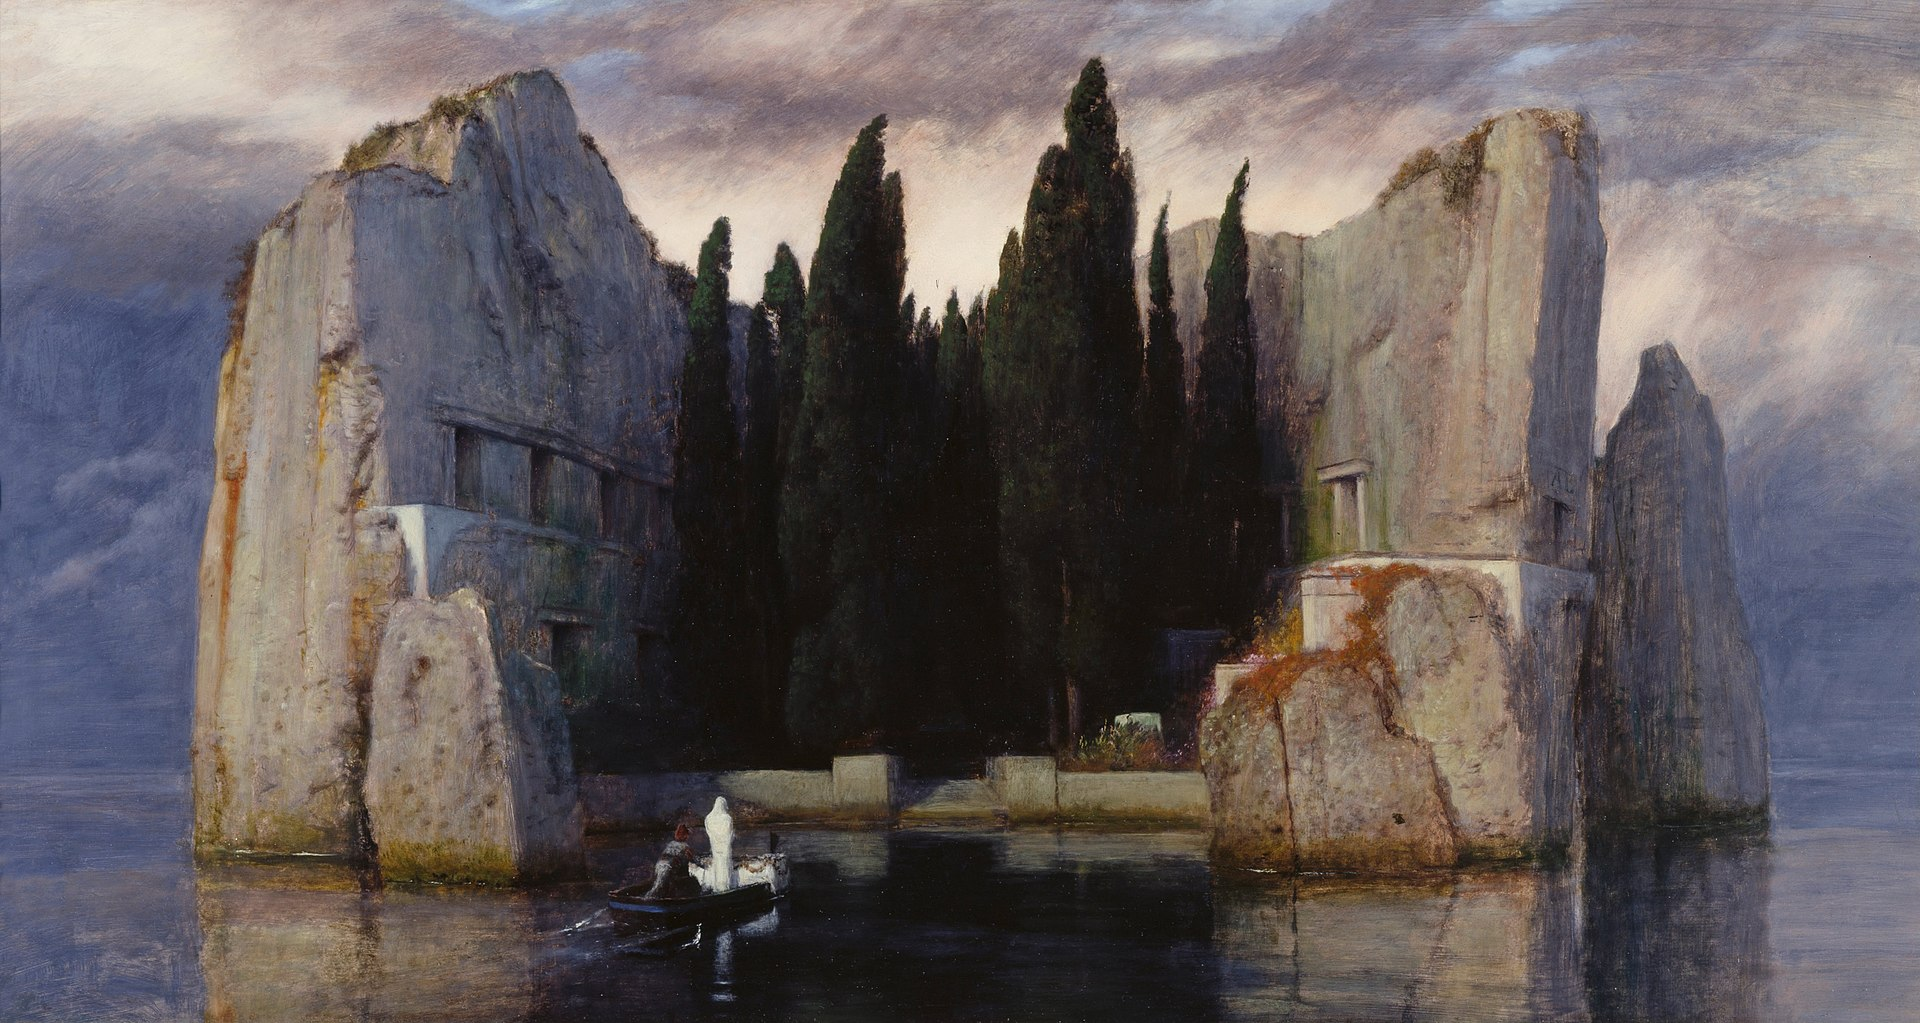 Die Toteninsel, Arnold Böcklin, 1883